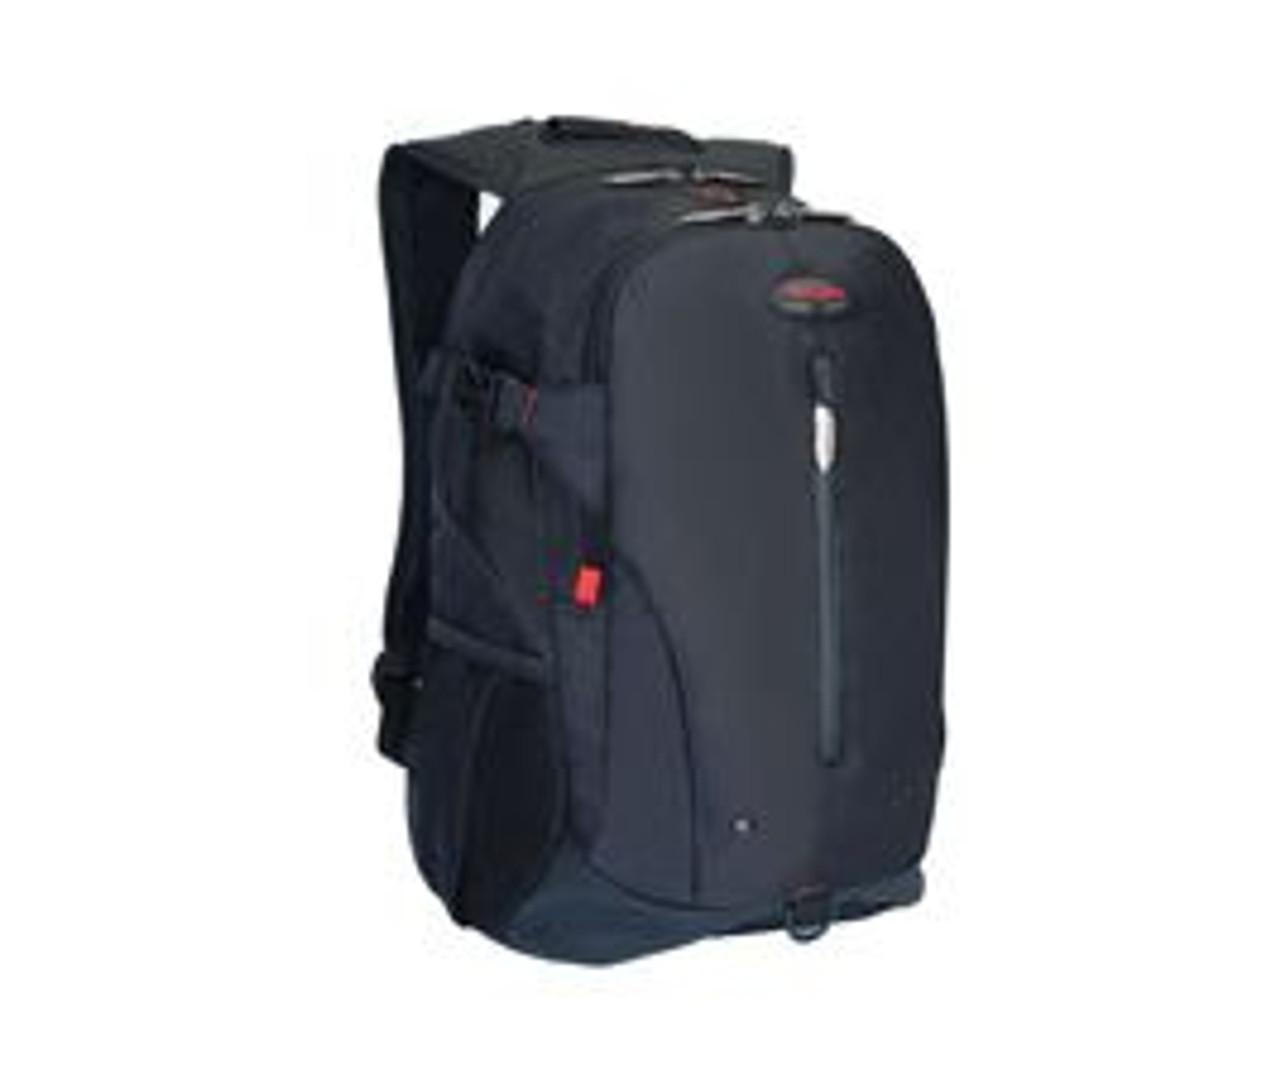 Product image for Targus 16in Terra Backpack Black TSB226AU | CX Computer Superstore